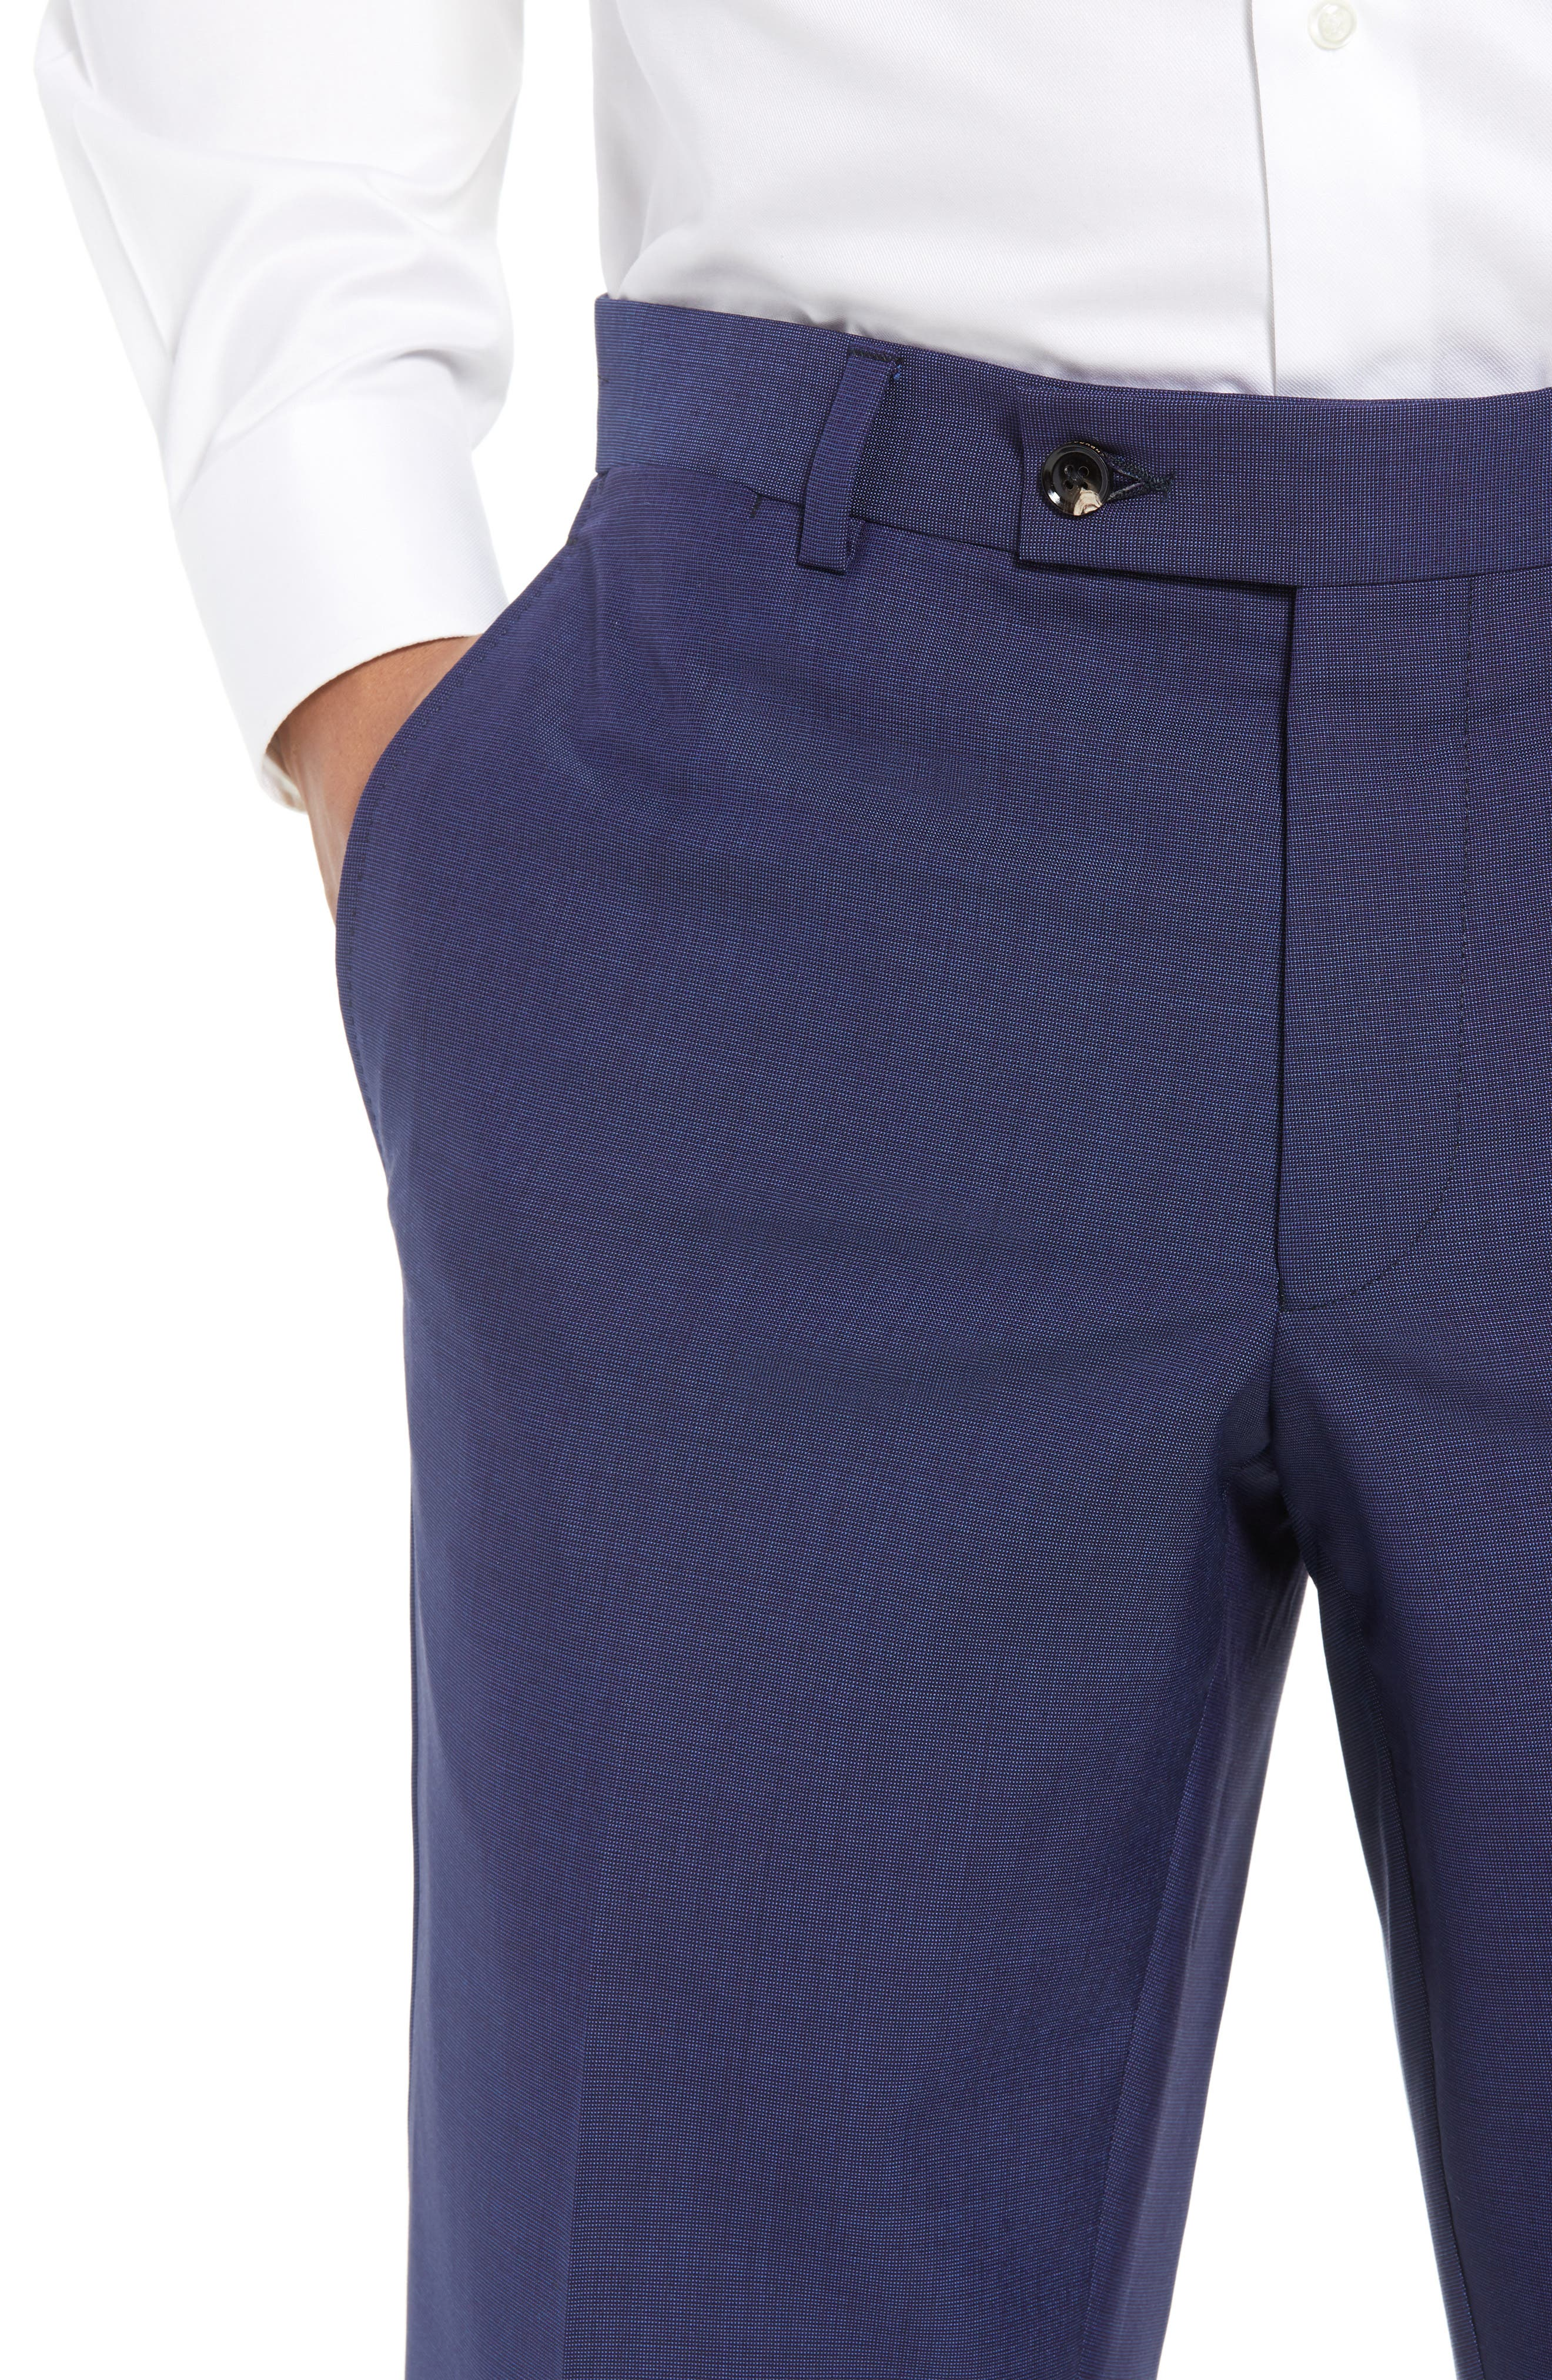 TED BAKER LONDON, Jefferson Flat Front Solid Wool Trousers, Alternate thumbnail 6, color, BLUE